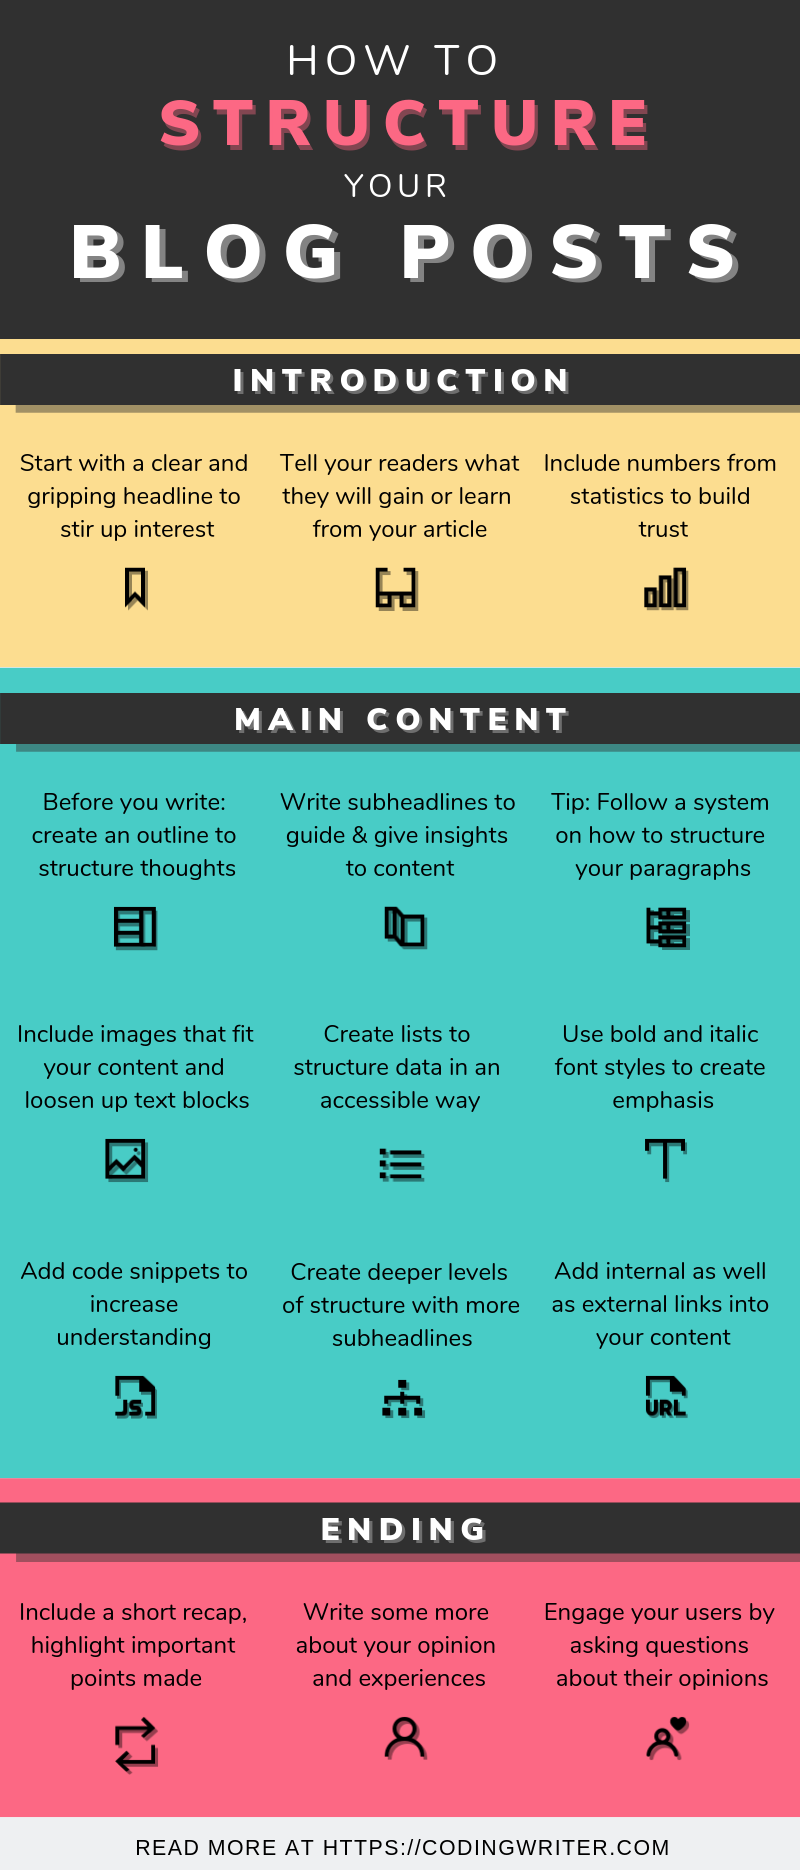 How to structure your blog posts and get more productive